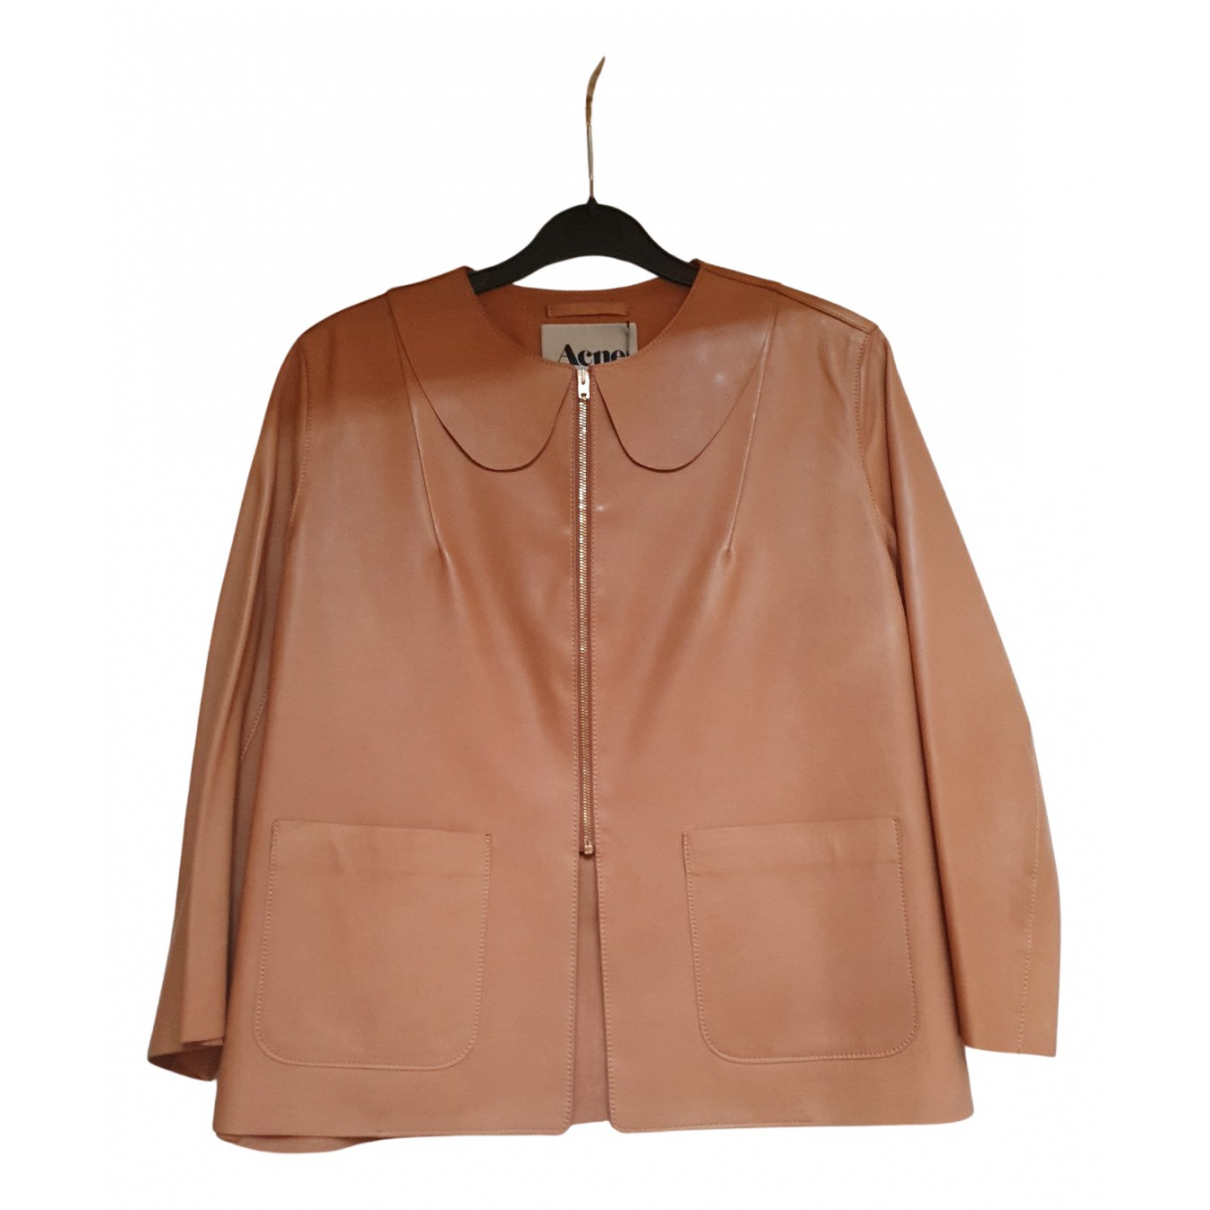 Acne Studios N Brown Leather Leather jacket for Women 36 FR